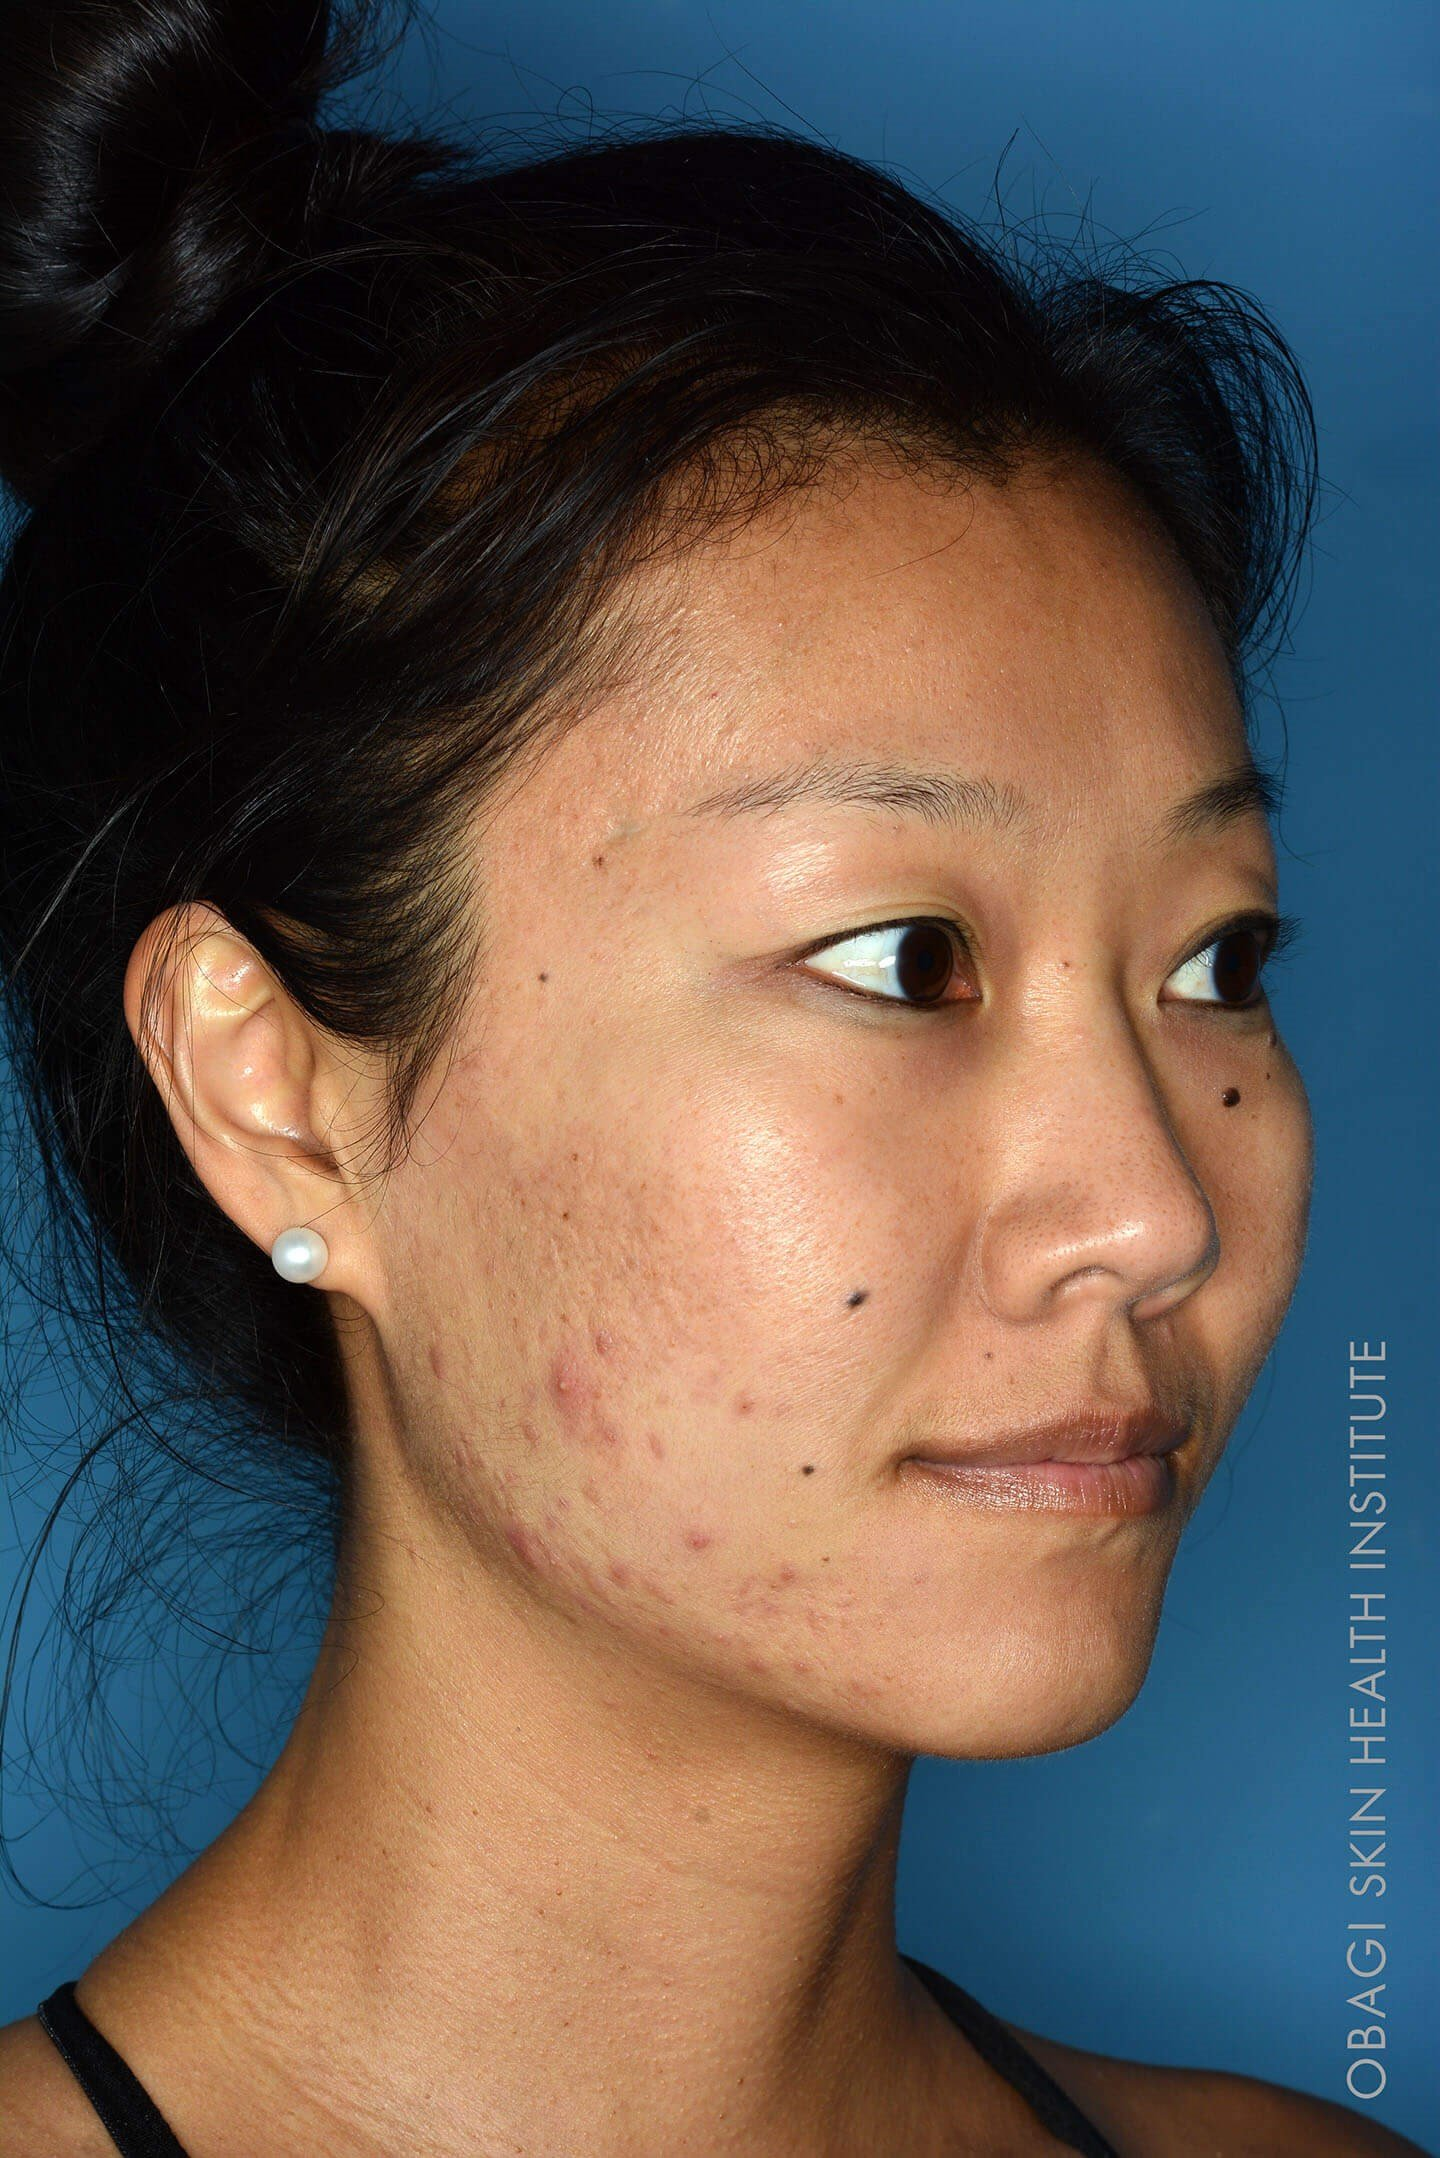 ZO® Custom Peel - Right View Before ZO Customized Treatment